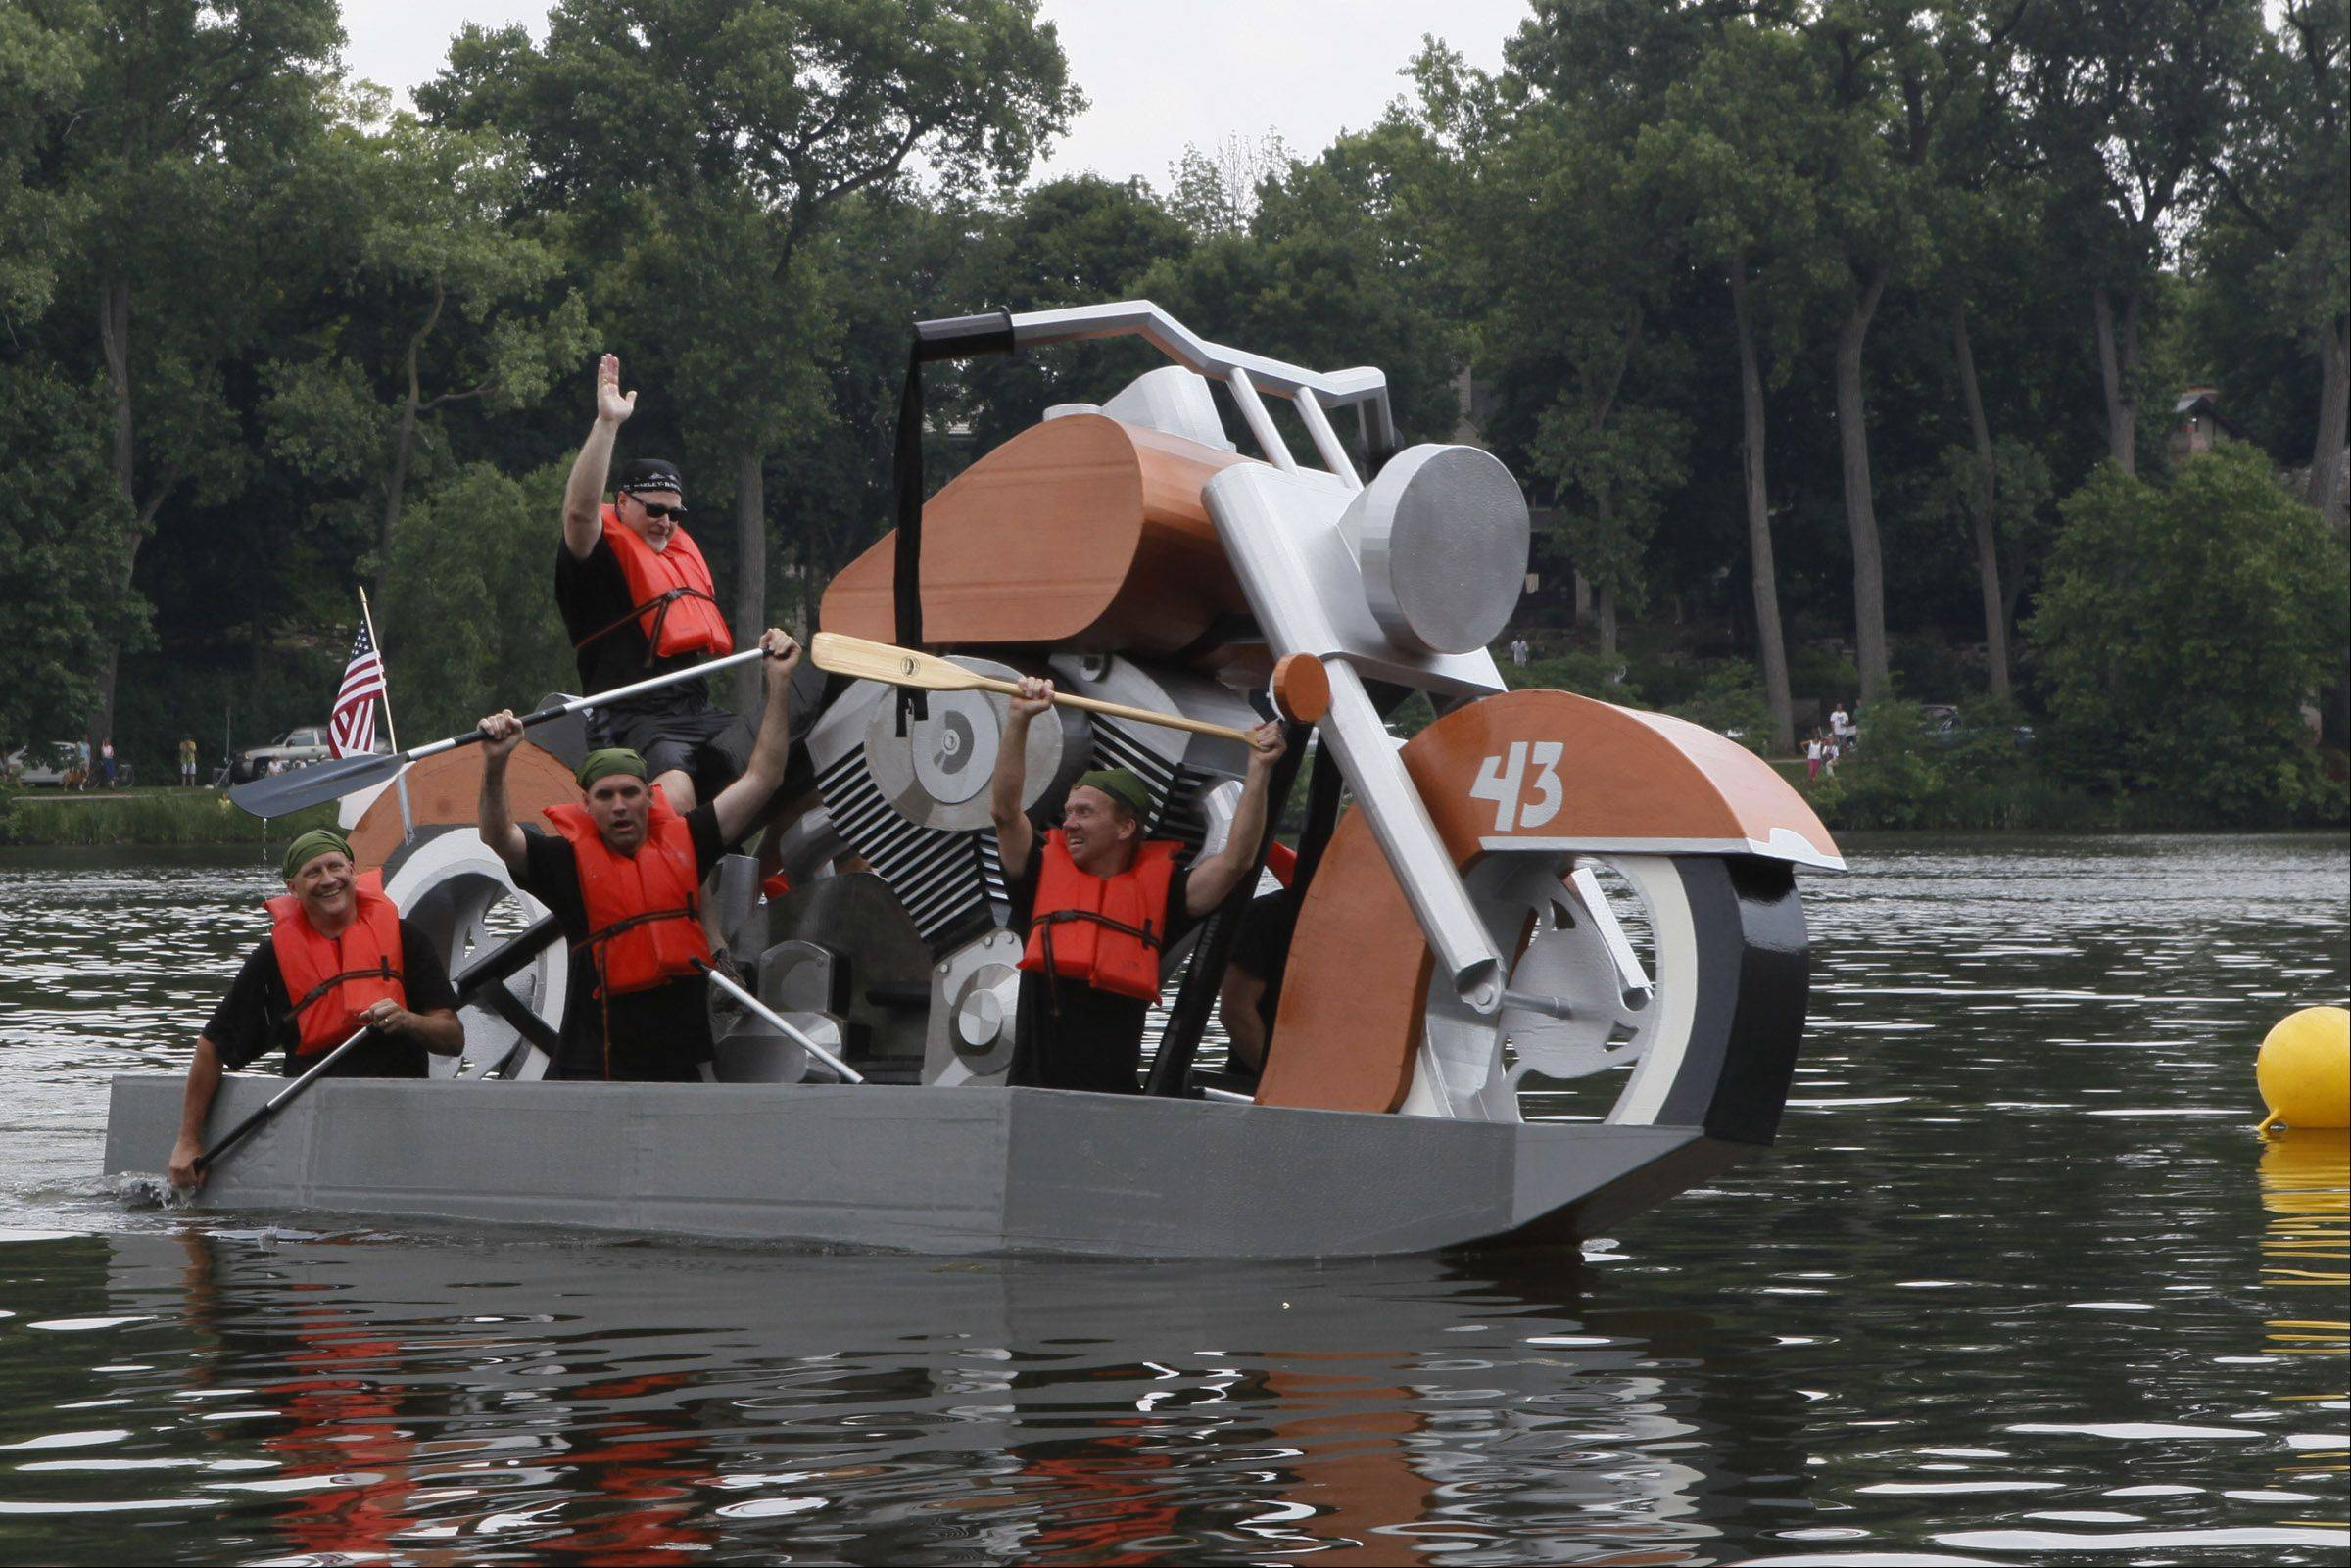 Jim Craig, atop the motorcycle seat, and his crew have come up with some creative design ideas in past years for Lake Ellyn's Cardboard Regatta in Glen Ellyn, including in 2011 when they built a replica Harley-Davidson motorcycle.